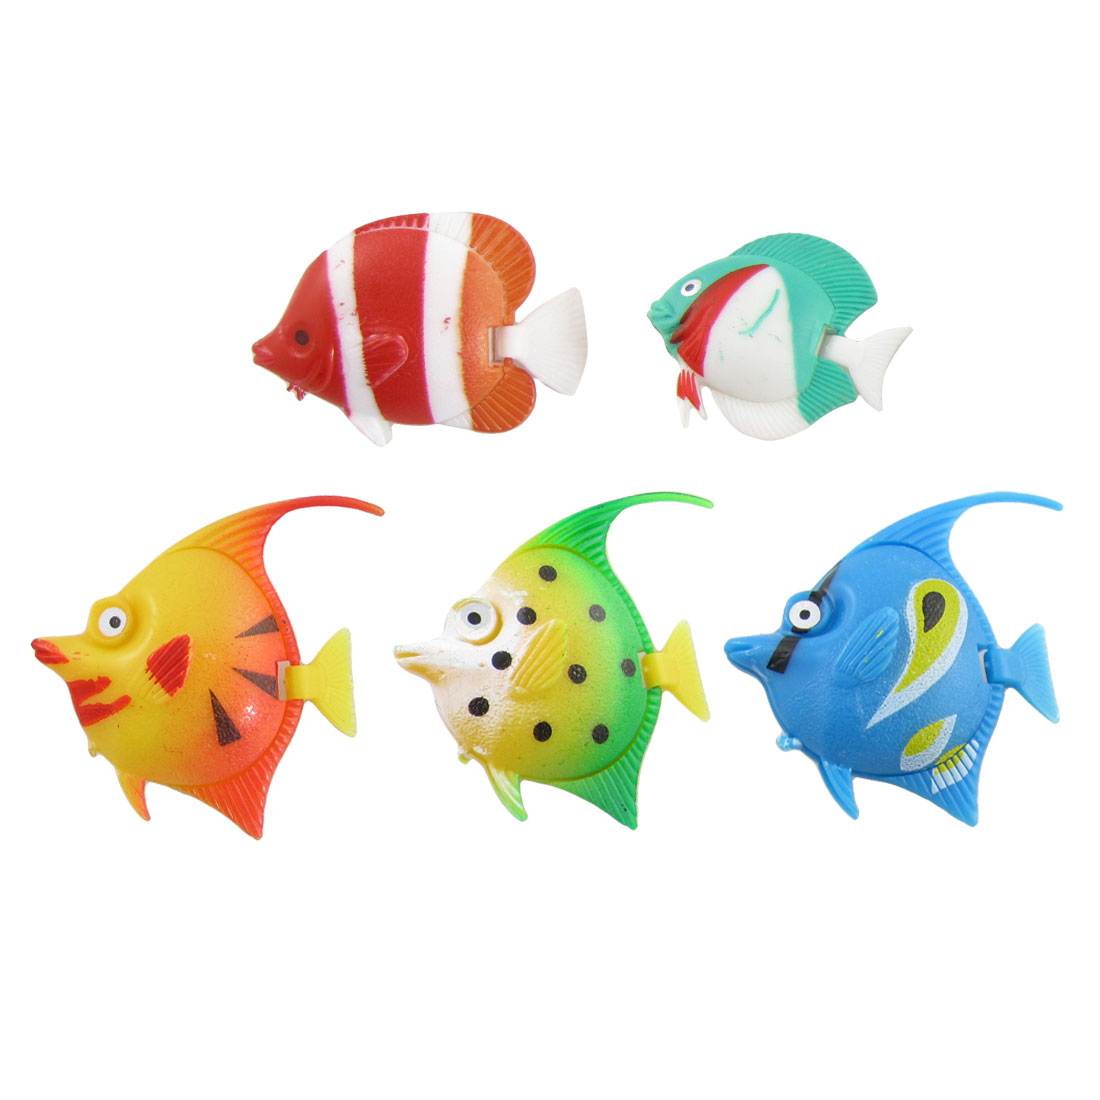 Multi-colored Plastic Swimming Fish Decor 5 Pcs for Aquarium